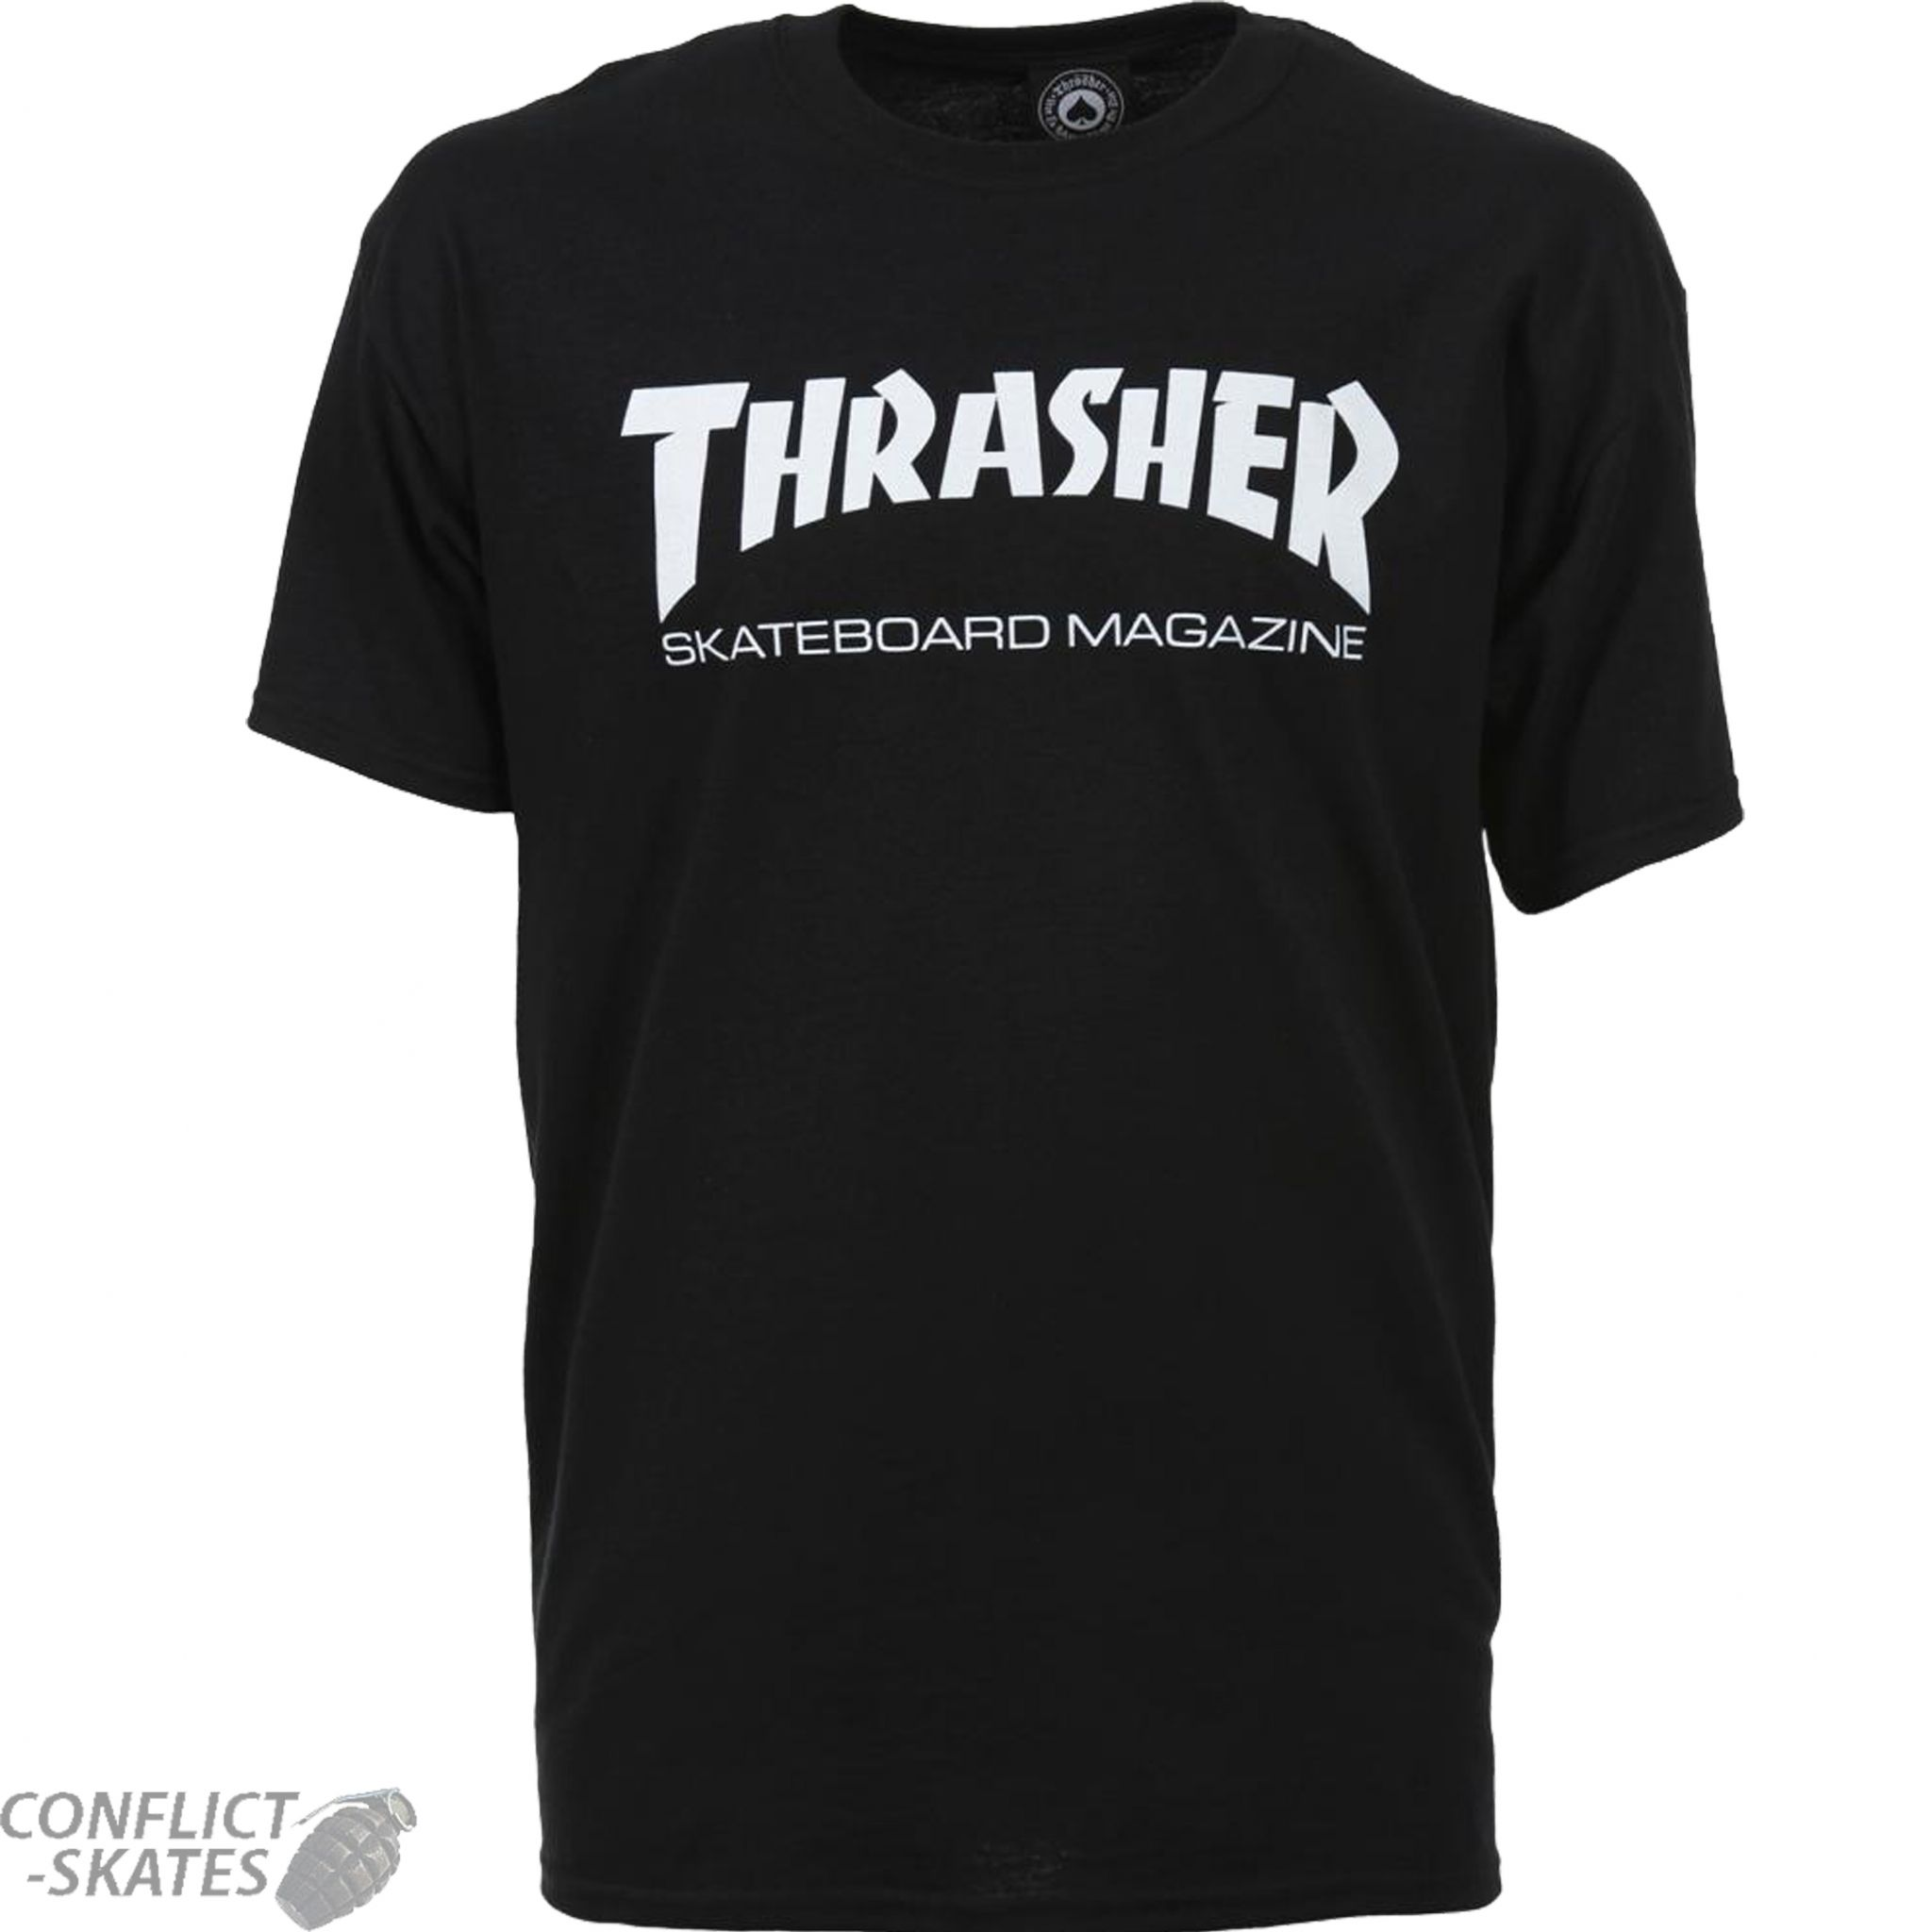 Black t shirt xxl - Thrasher Magazine Skate Mag Logo Skateboard T Shirt Black S M L Xl Or Xxl